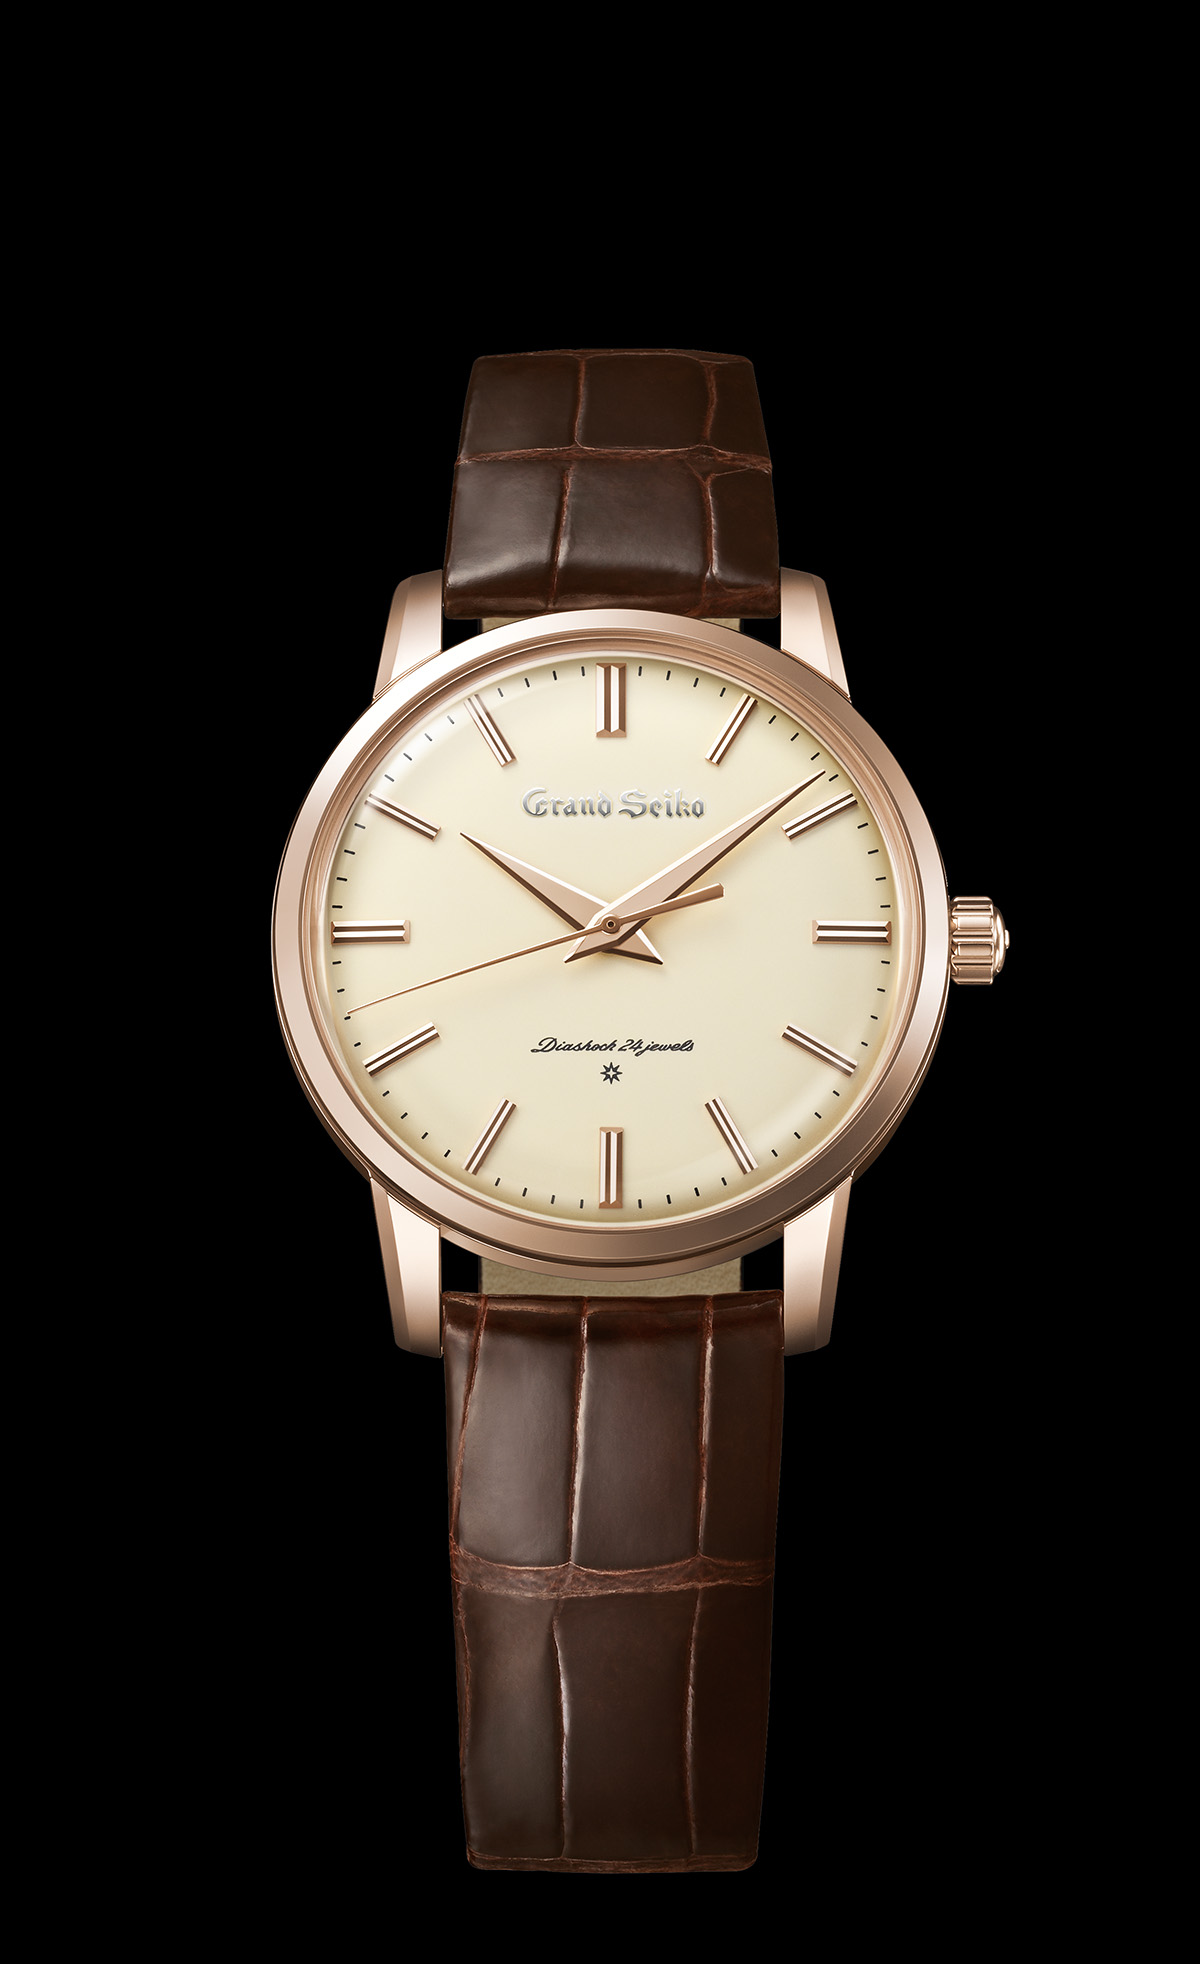 SBGW260 Grand Seiko Kintaro Hattori 160th Anniversary Limited Edition